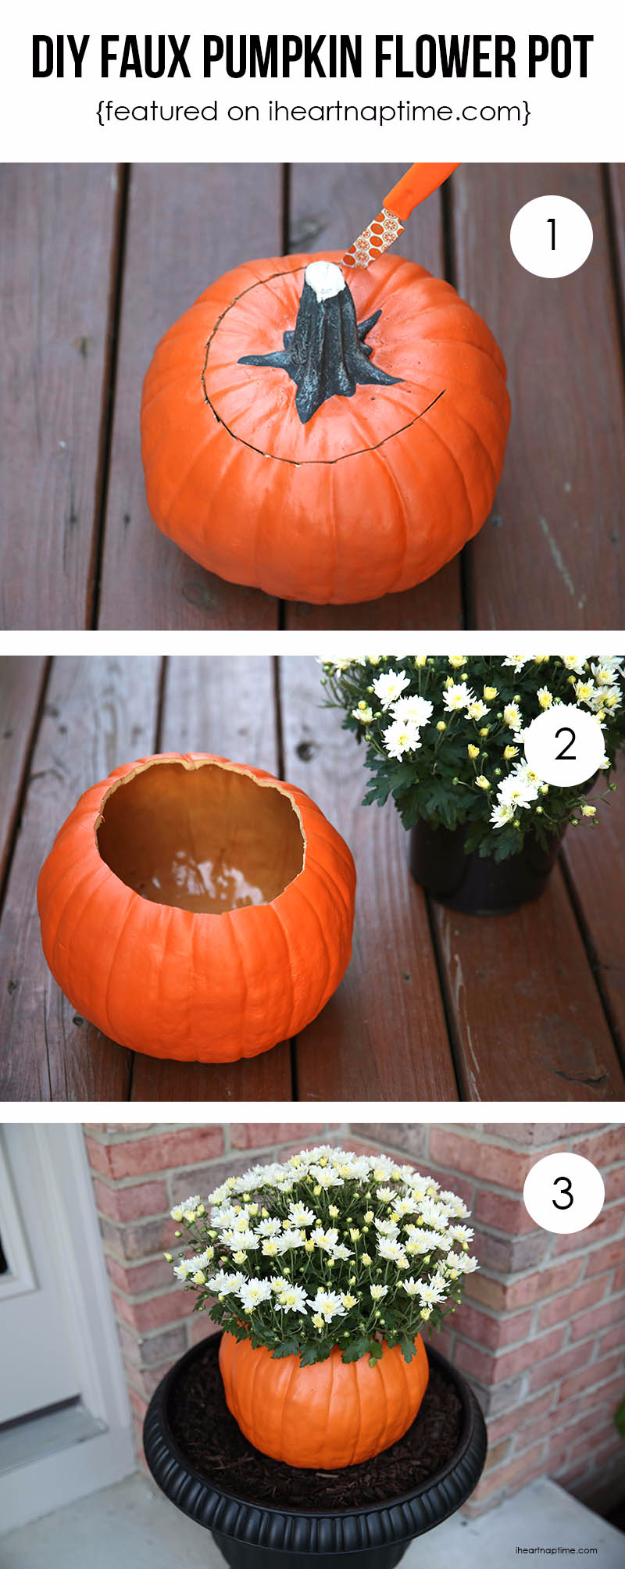 38 Best DIY Projects for Fall - DIY Pumpkin Flower Pot - Quick And Easy Projects For Fall, Fun DIY Projects To Try This Fall, Cute Fall Craft Ideas, Fall Decors, Easy DIY Crafts For Fall